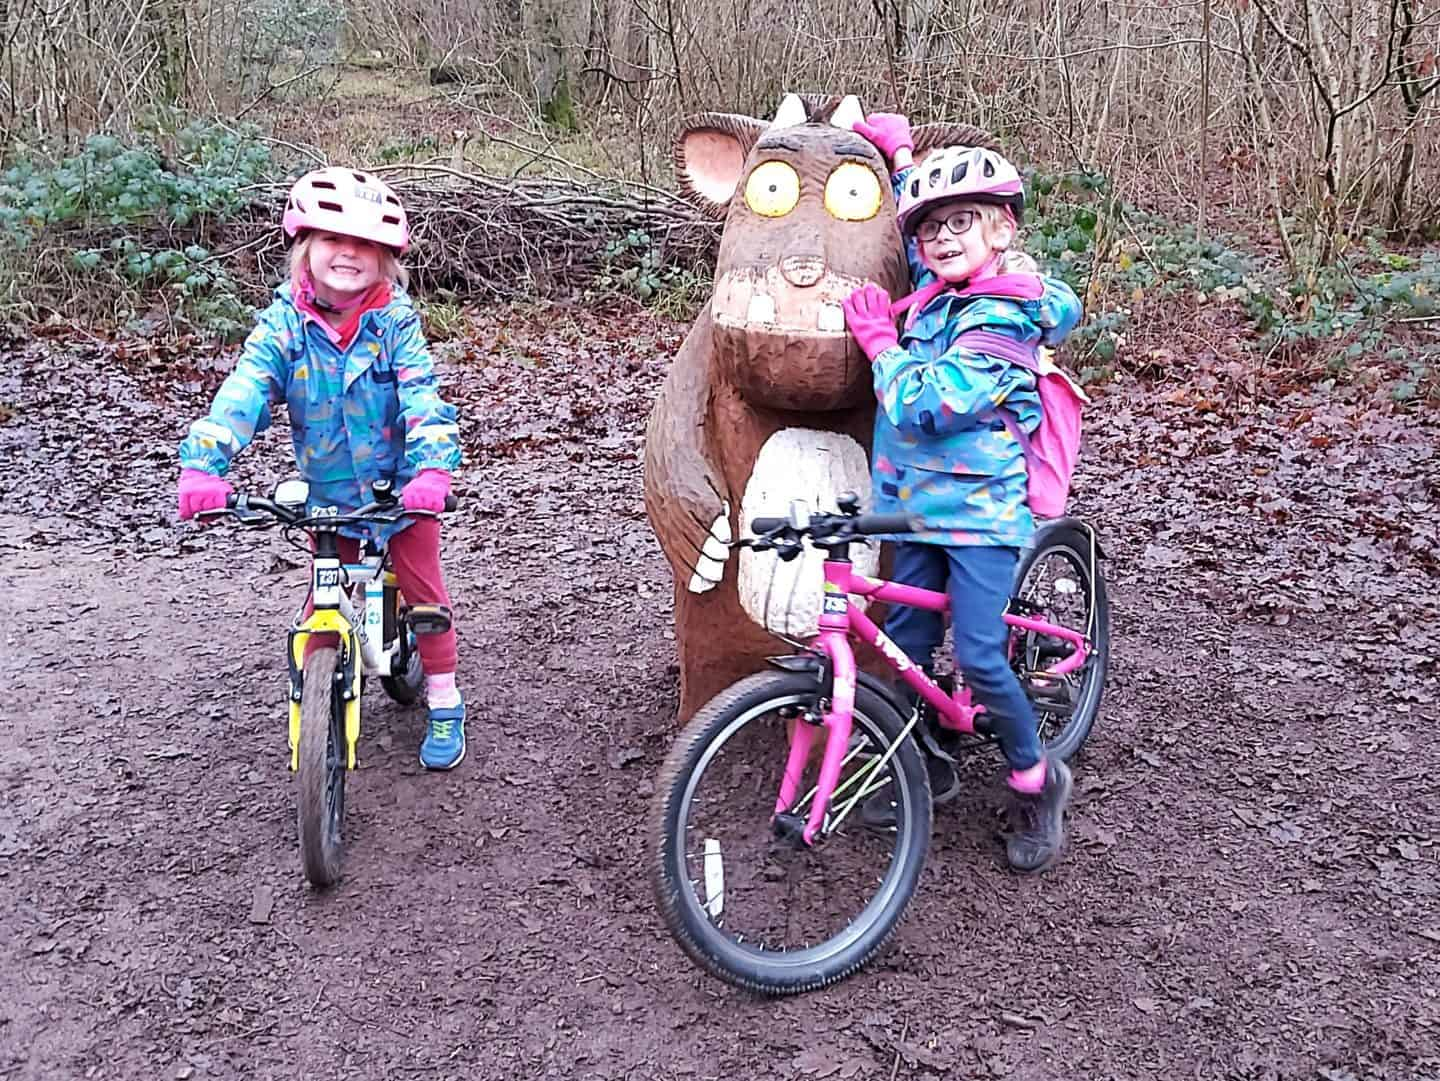 Two girls on bikes standing with the Gruffalo's child sculpture at Westonbirt Arboretum